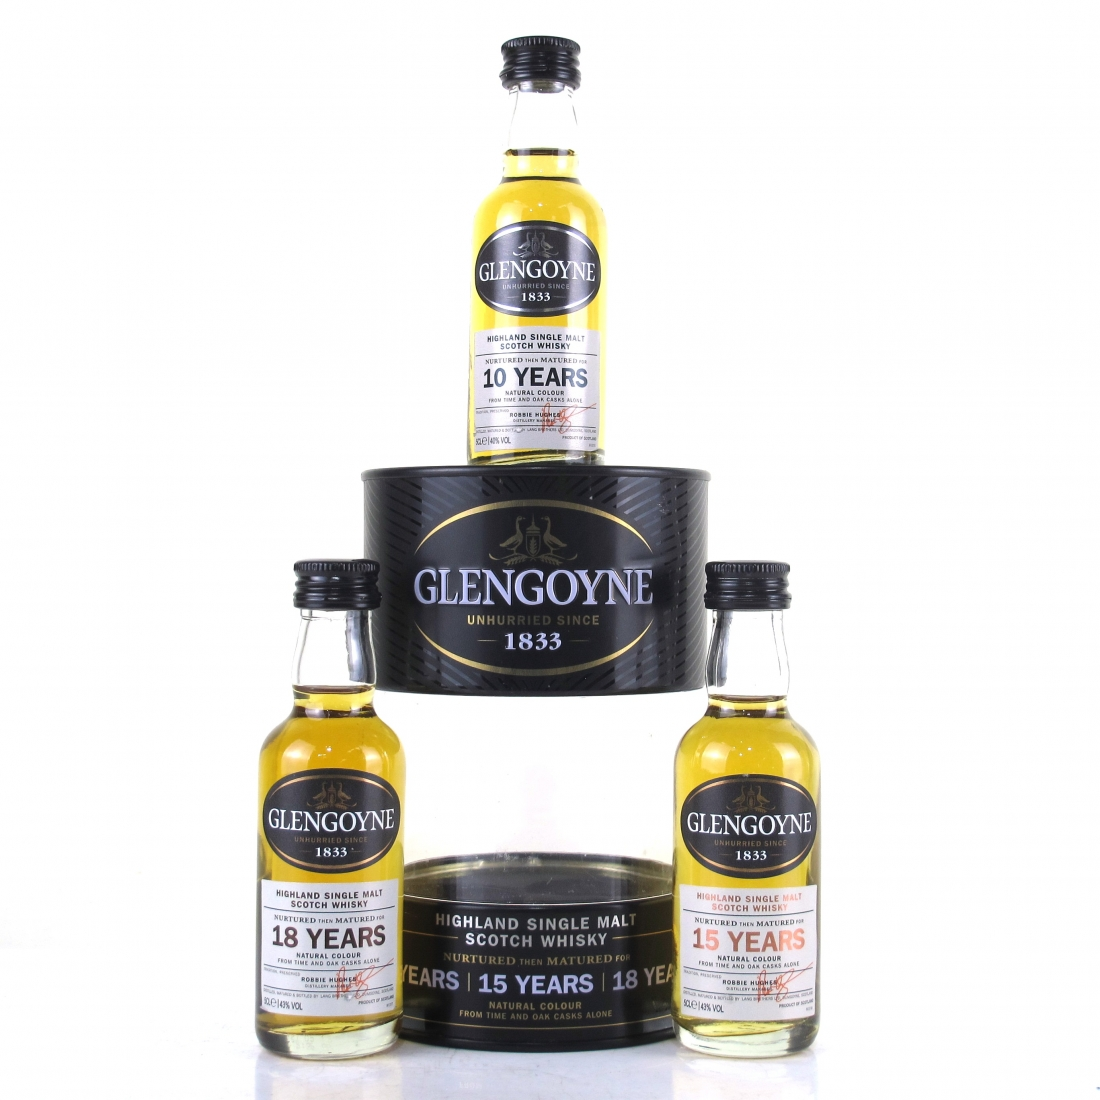 Glengoyne 10, 15, 18 Year Old Miniature Pack 3 x 5cl